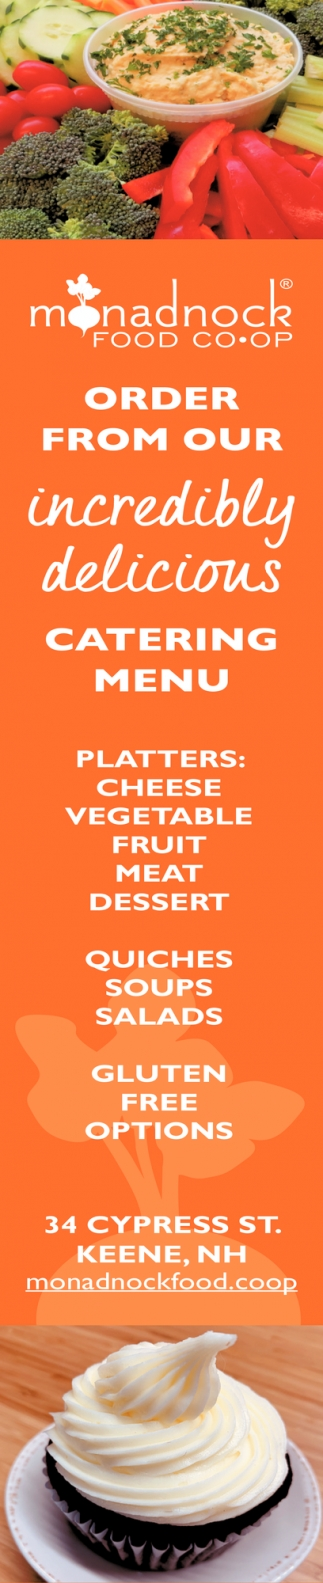 Order From Our Incredible Delicious Catering Menu